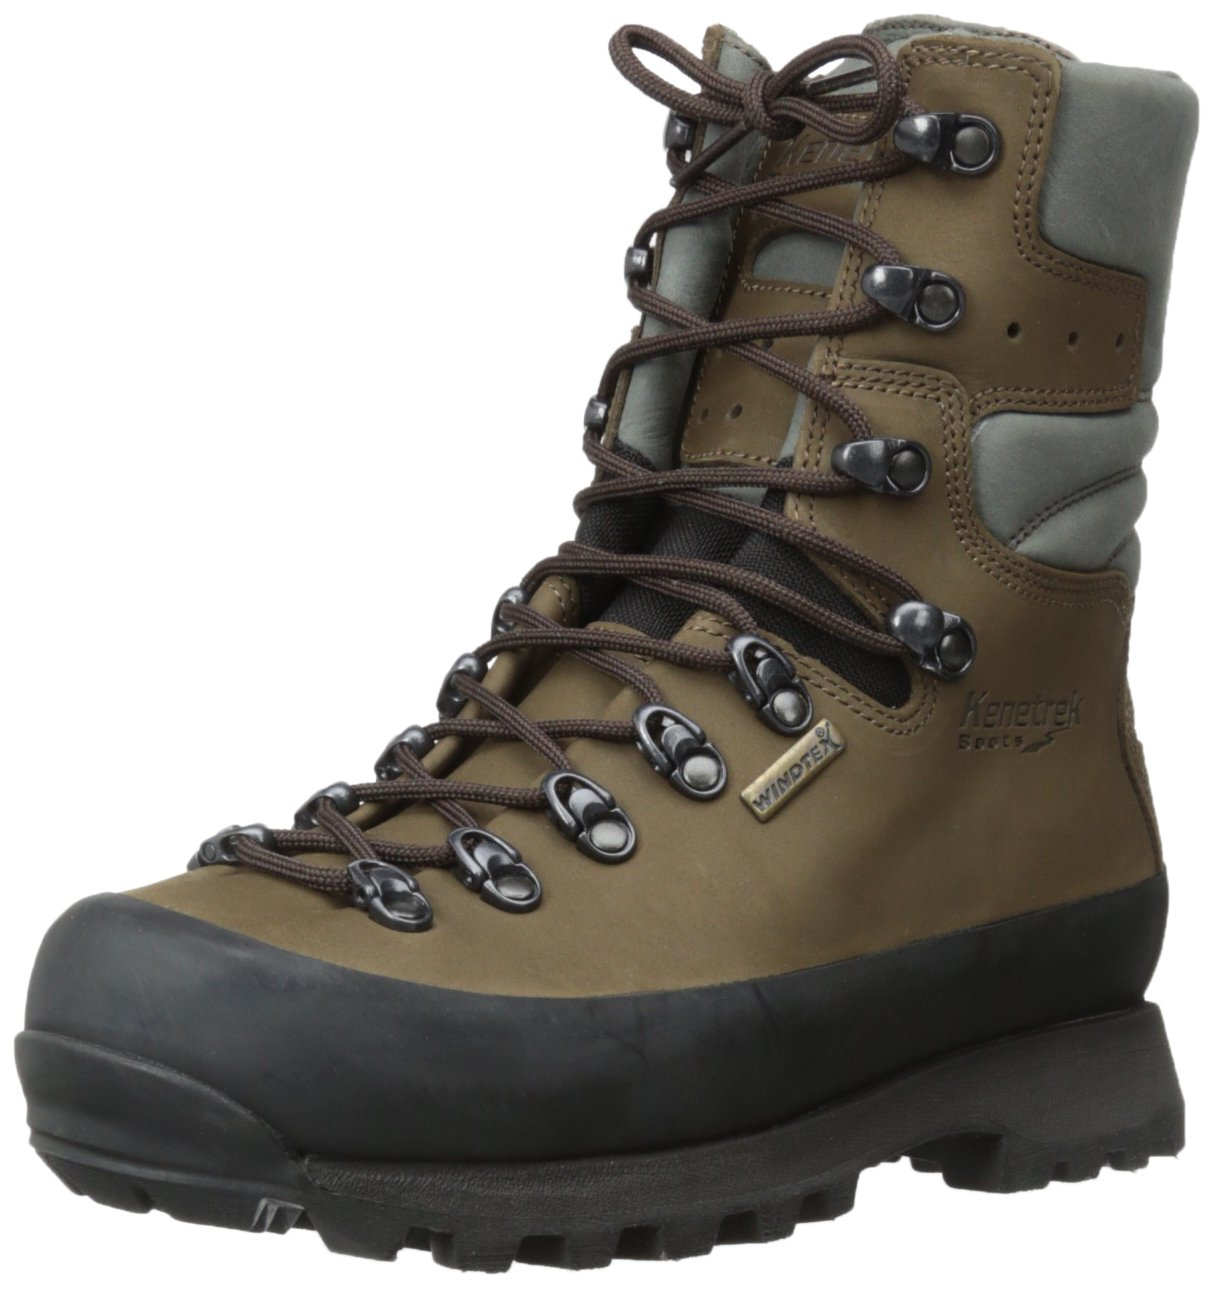 Kenetrek Women's Mountain Extreme Non-insulated Hunting Boot B071W781J3 11 B(M) US|Brown